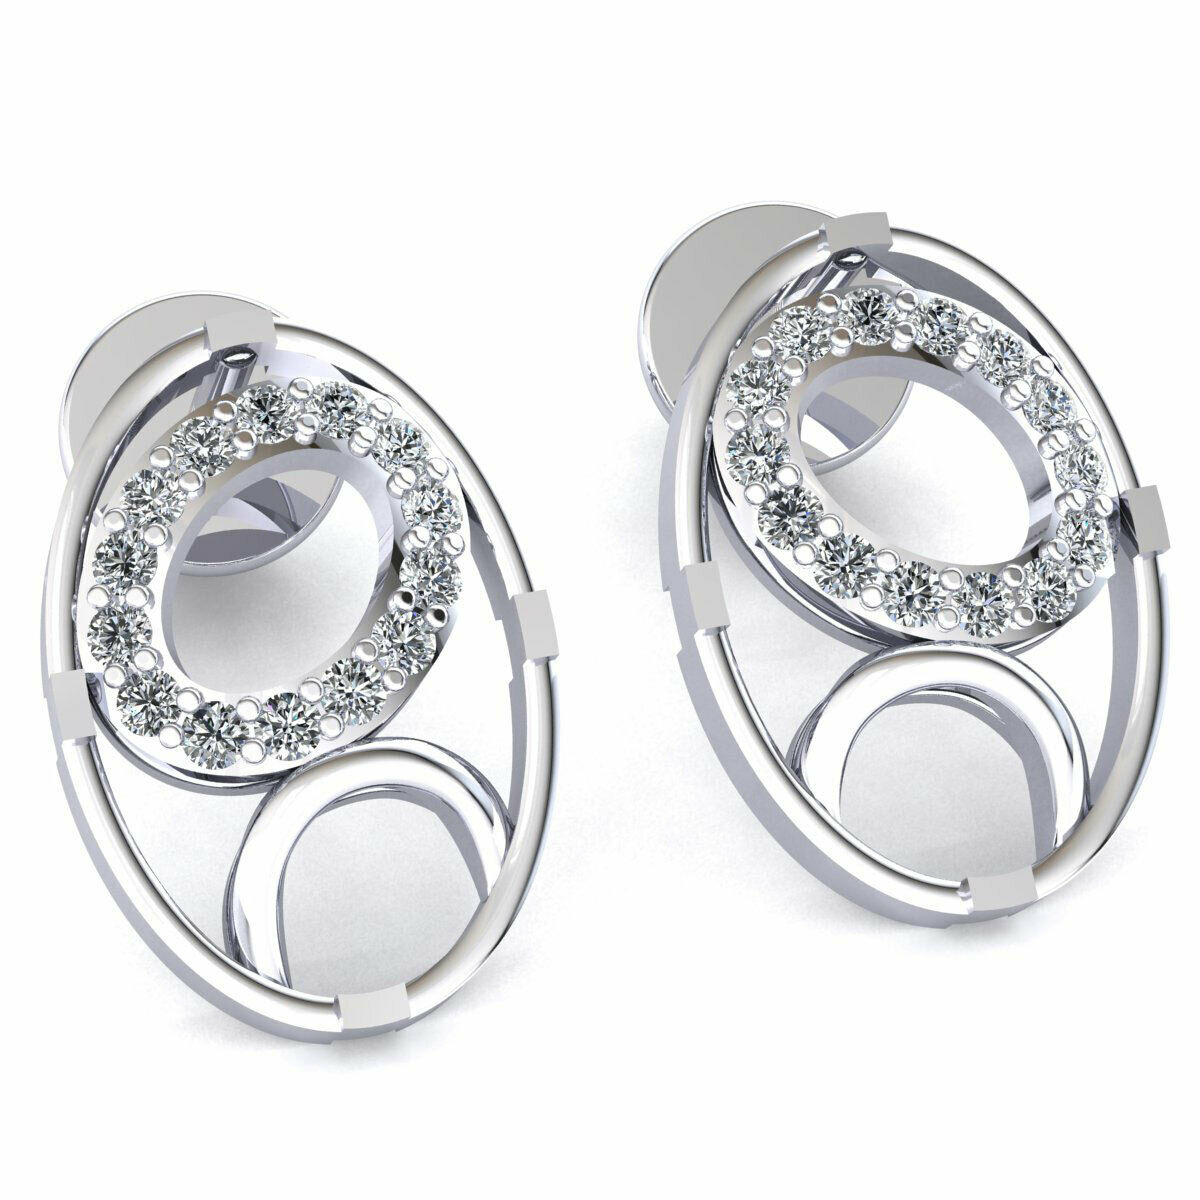 be27c4b3f59e2 Solid Earrings Oval Double Ladies Diamond Cut Round 0.15carat ...